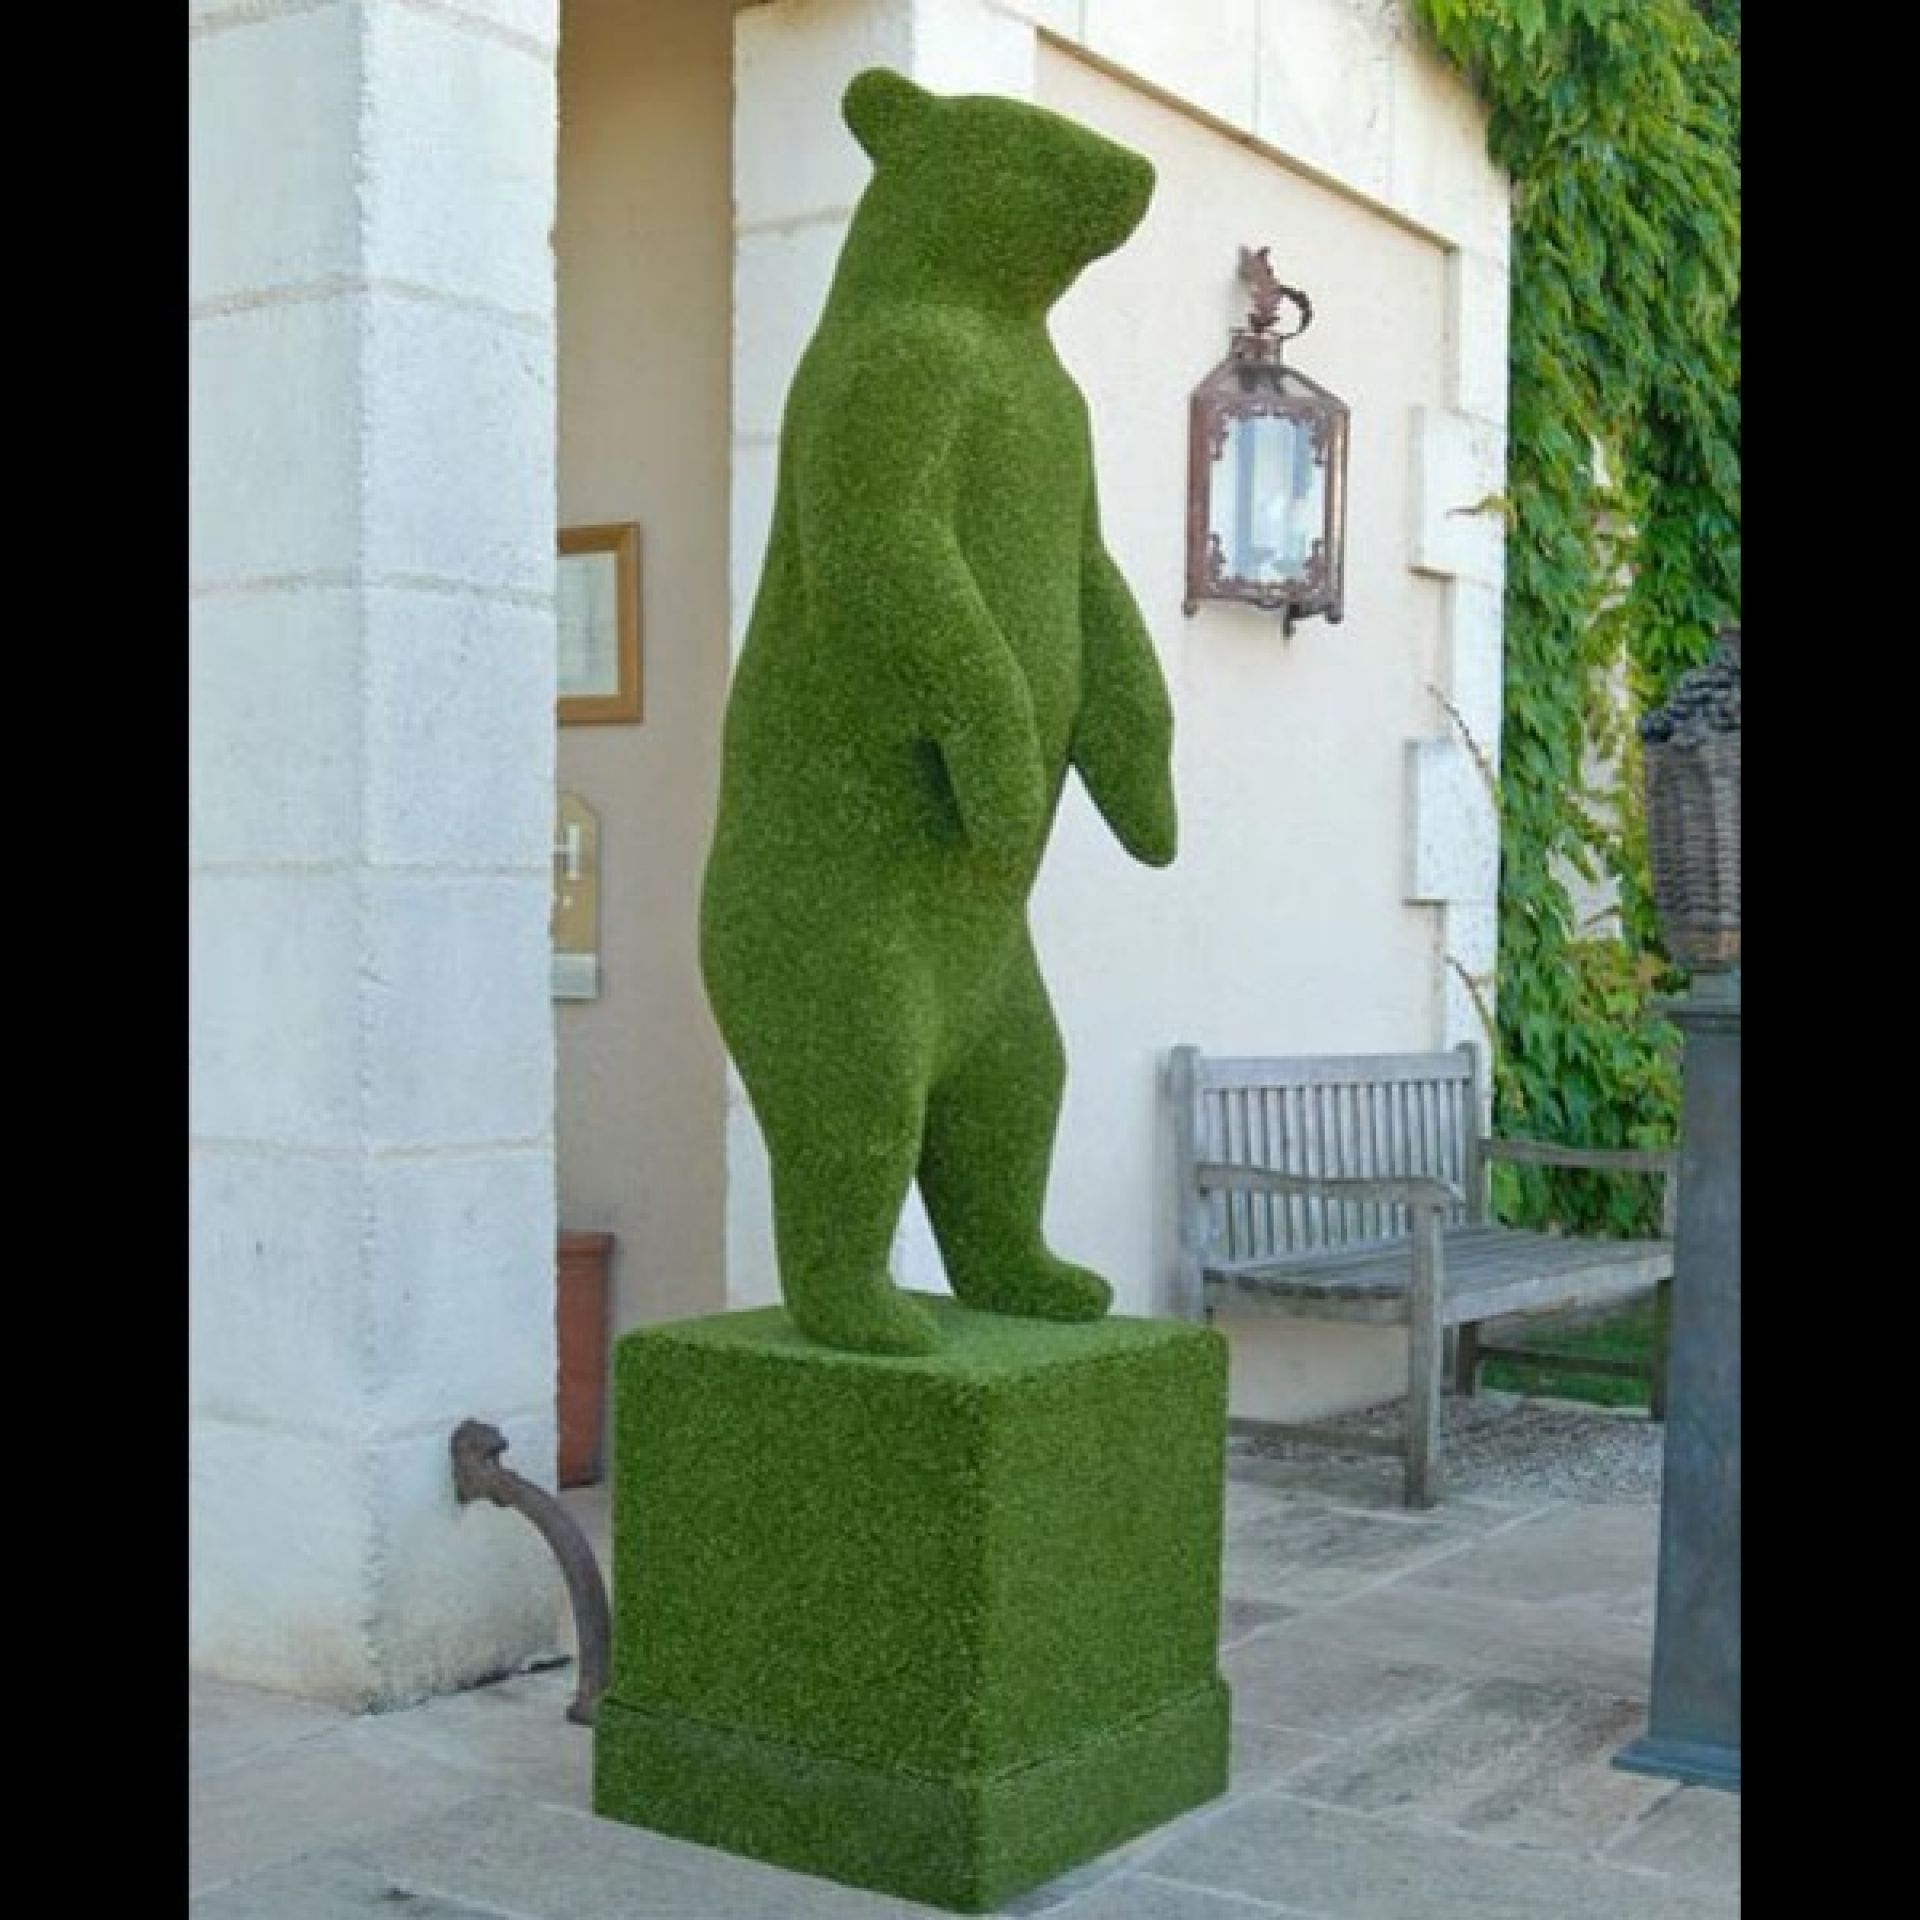 15-BEAR-M SYNTHETIC TURF SCULPTURE